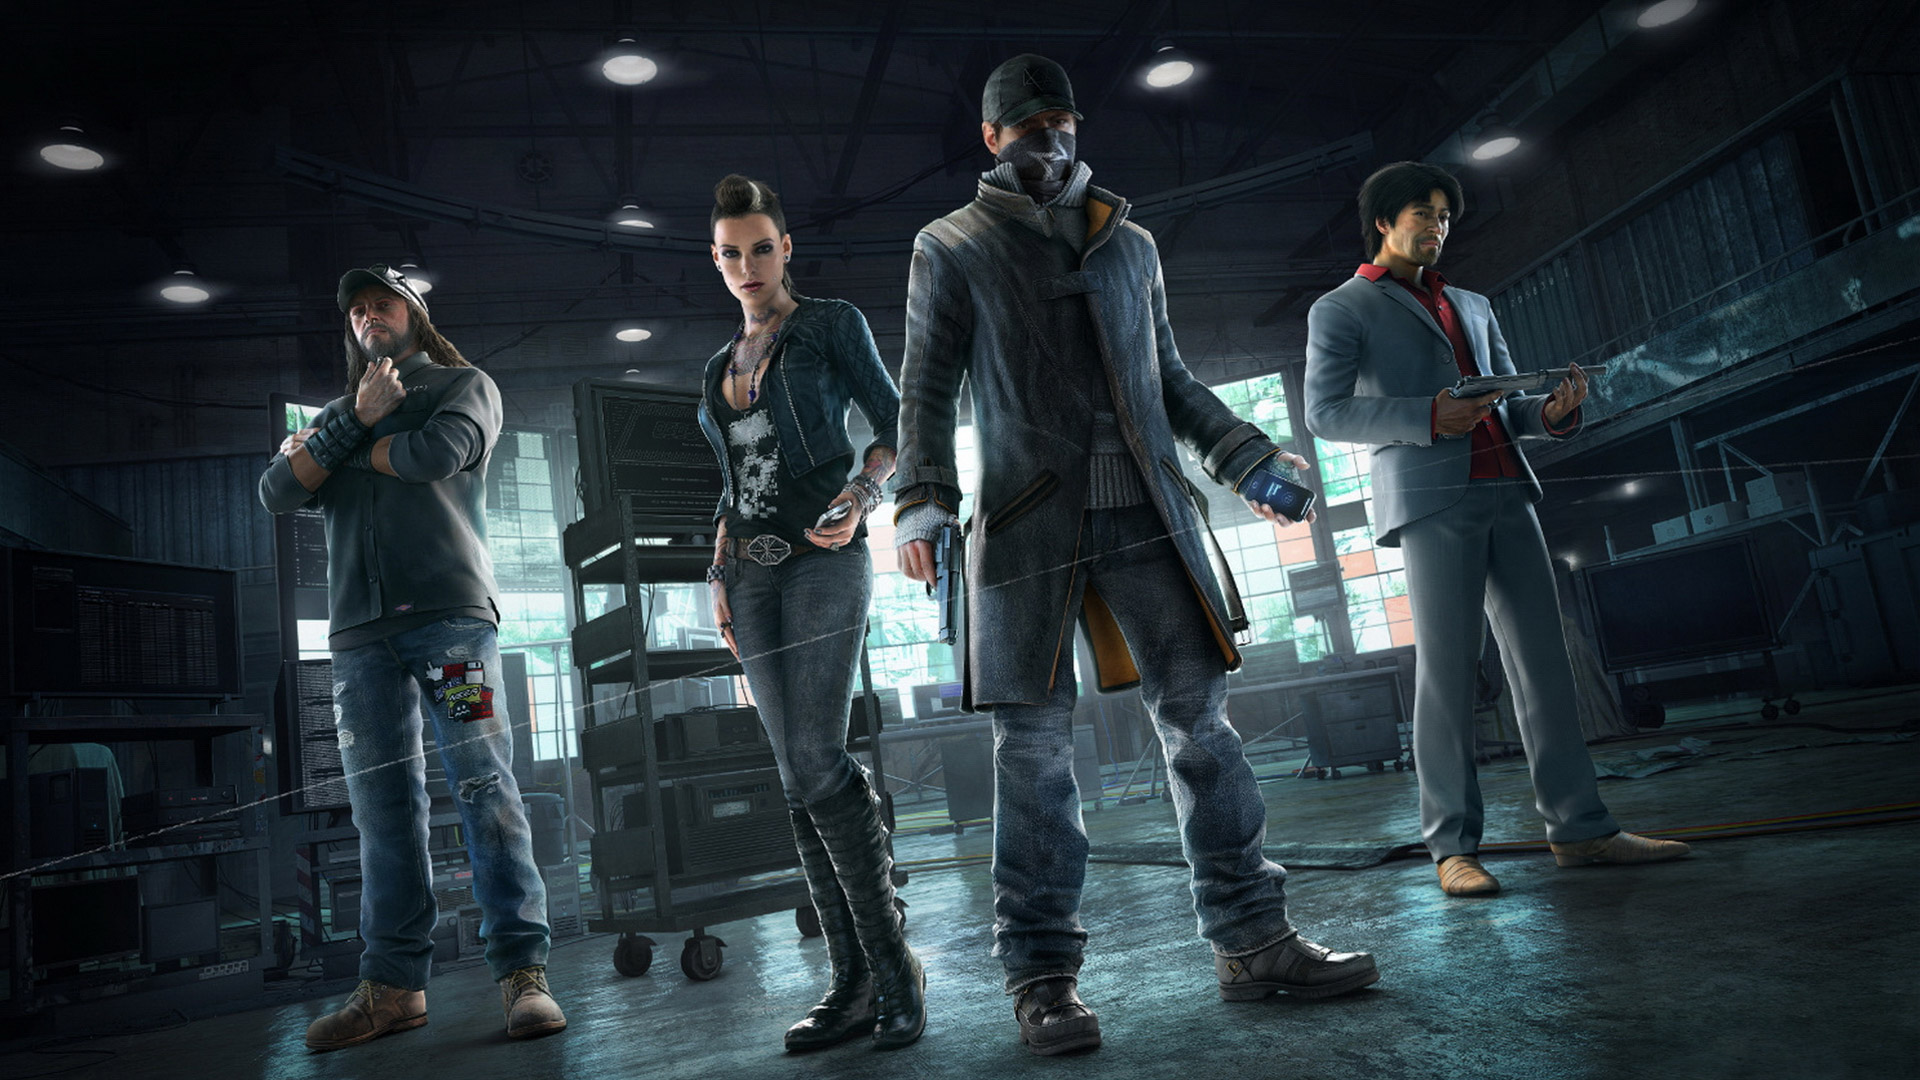 Watch Dogs Wallpaper in 1920x1080